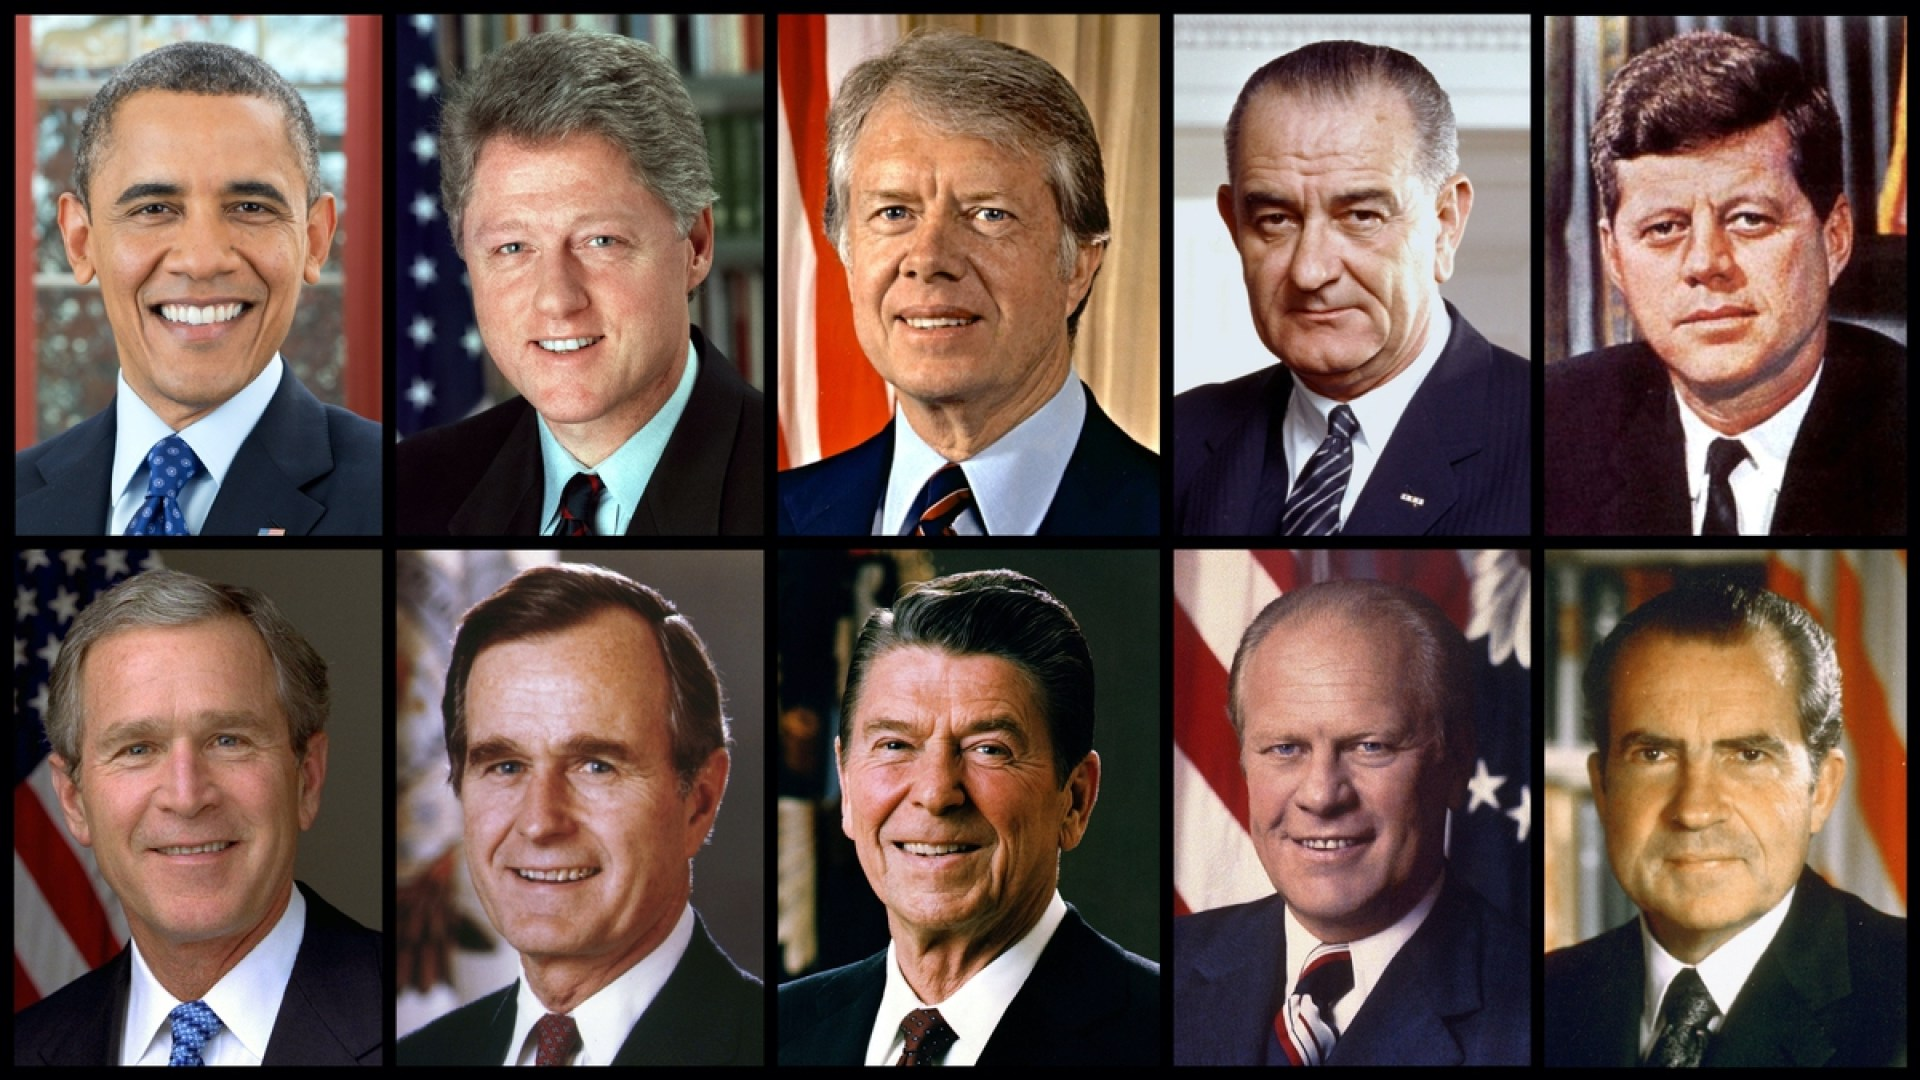 Democrats top row: President Obama, Clinton, Carter, Johnson, Kennedy. Republicans bottom row: President W. Bush, Bush, Reagan, Ford, Nixon. (Official White House Photos)